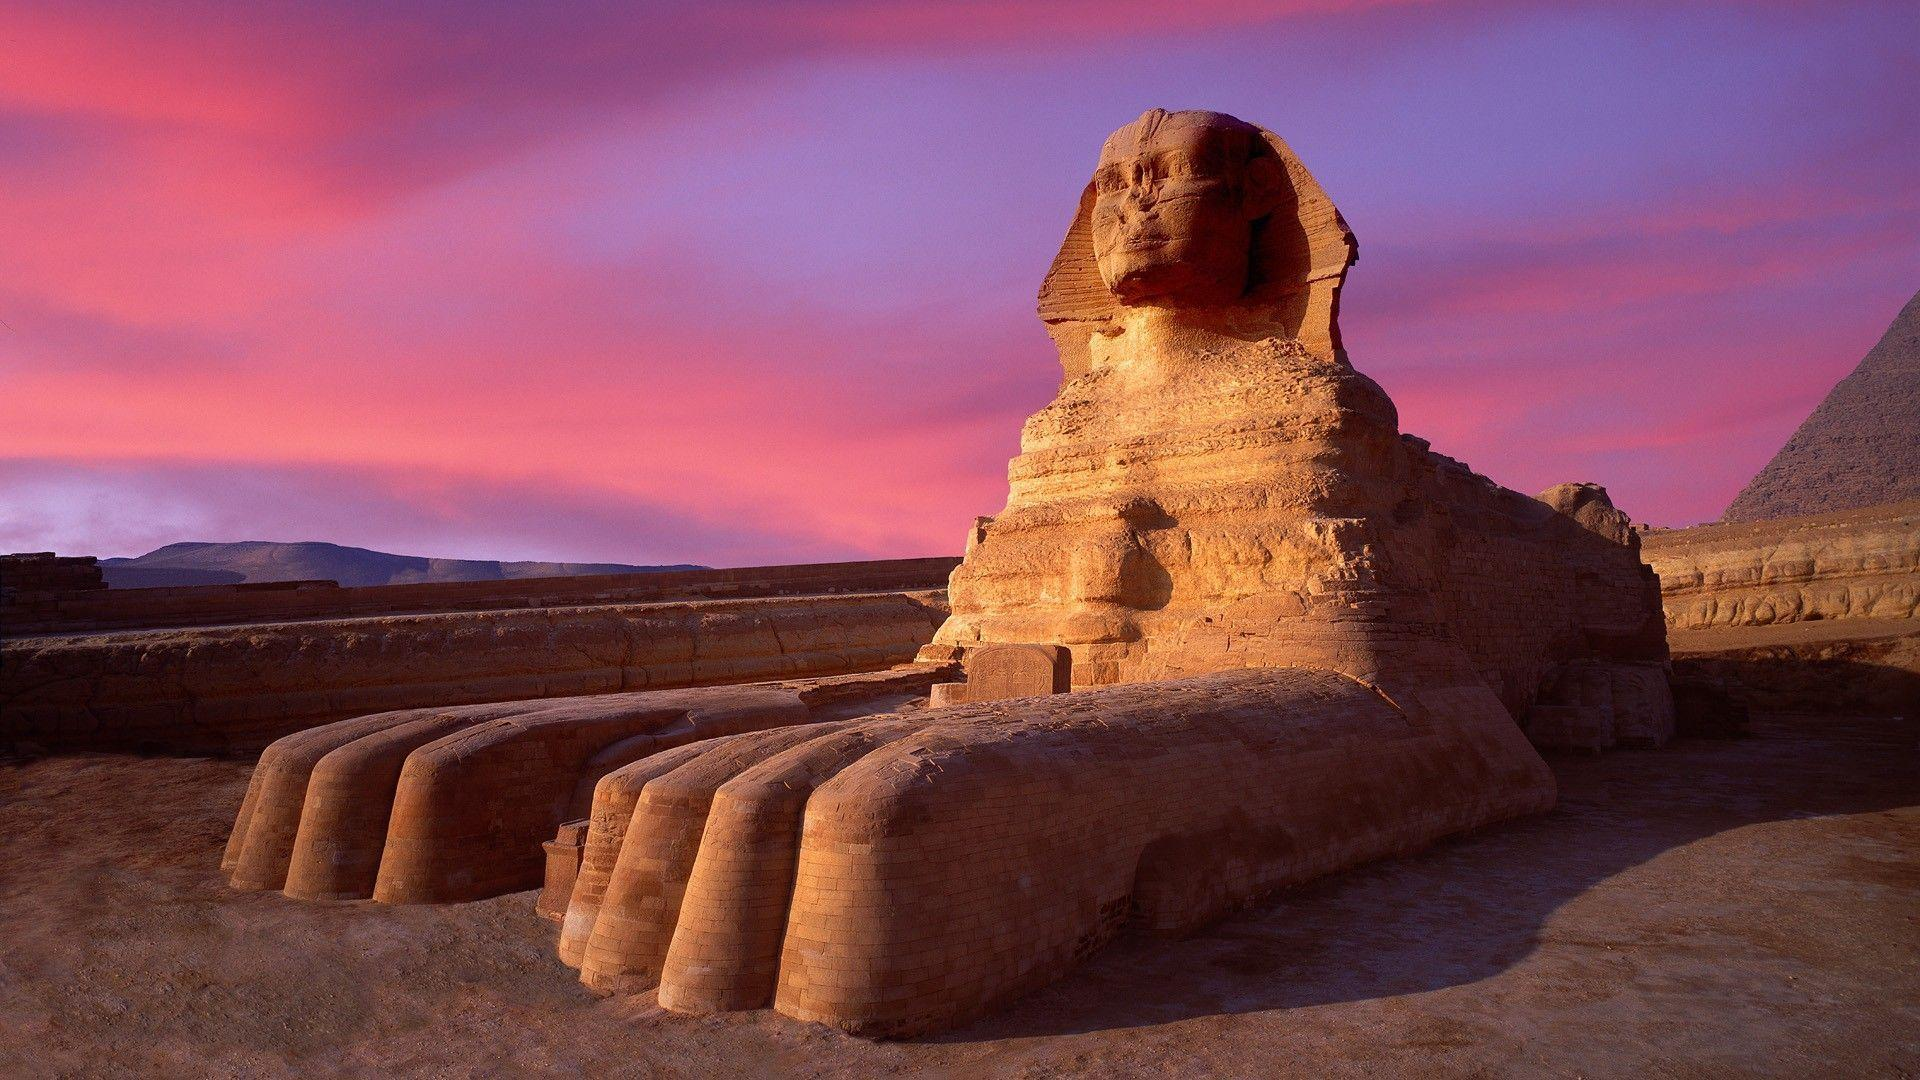 The Sphinx Egypt Wallpapers 1920x1080